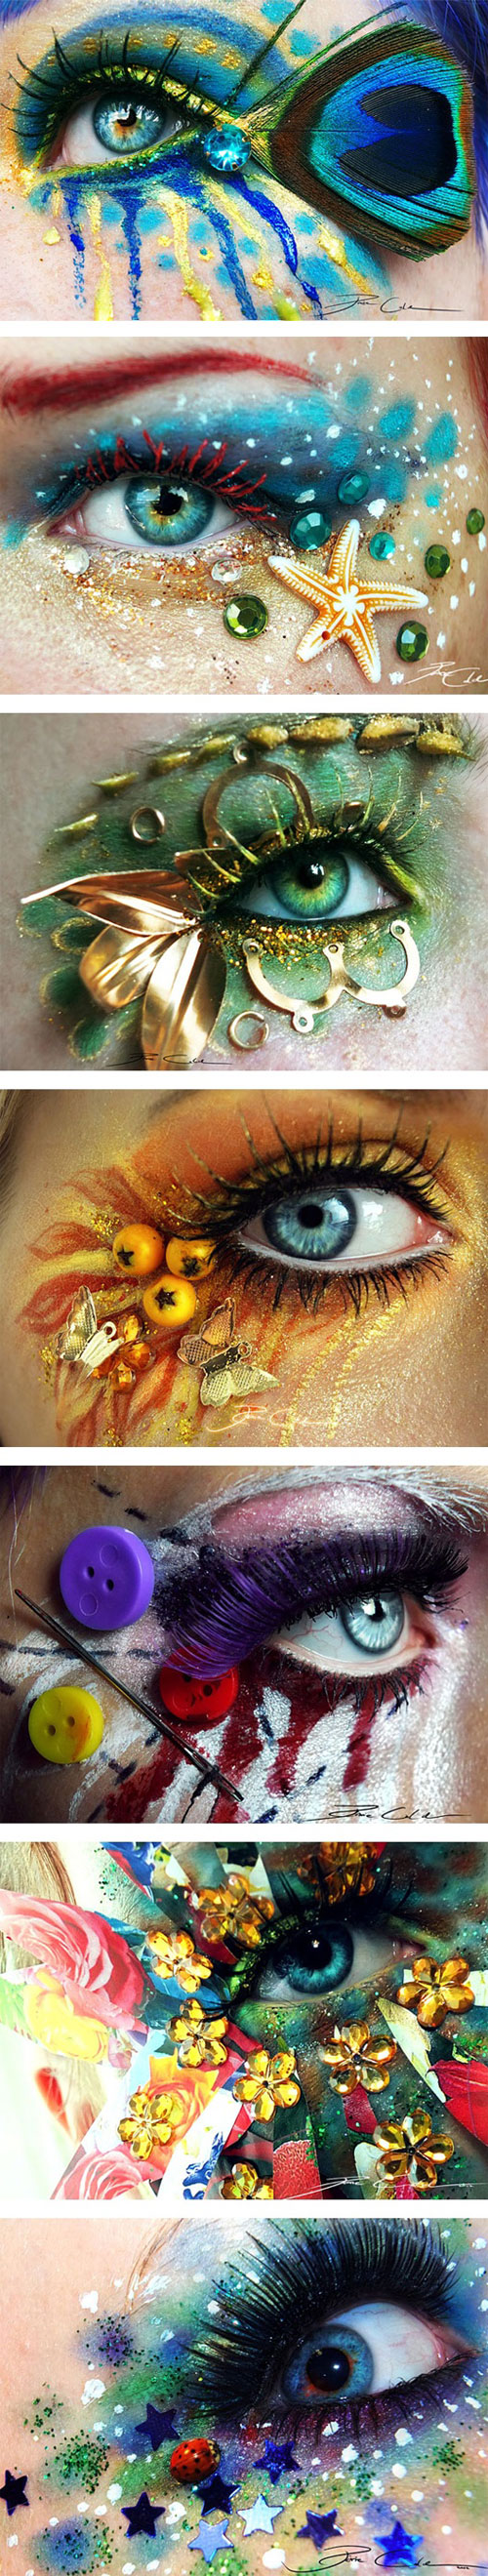 20-Eye-Halloween-Makeup-Ideas-Looks-Trends-2015-12